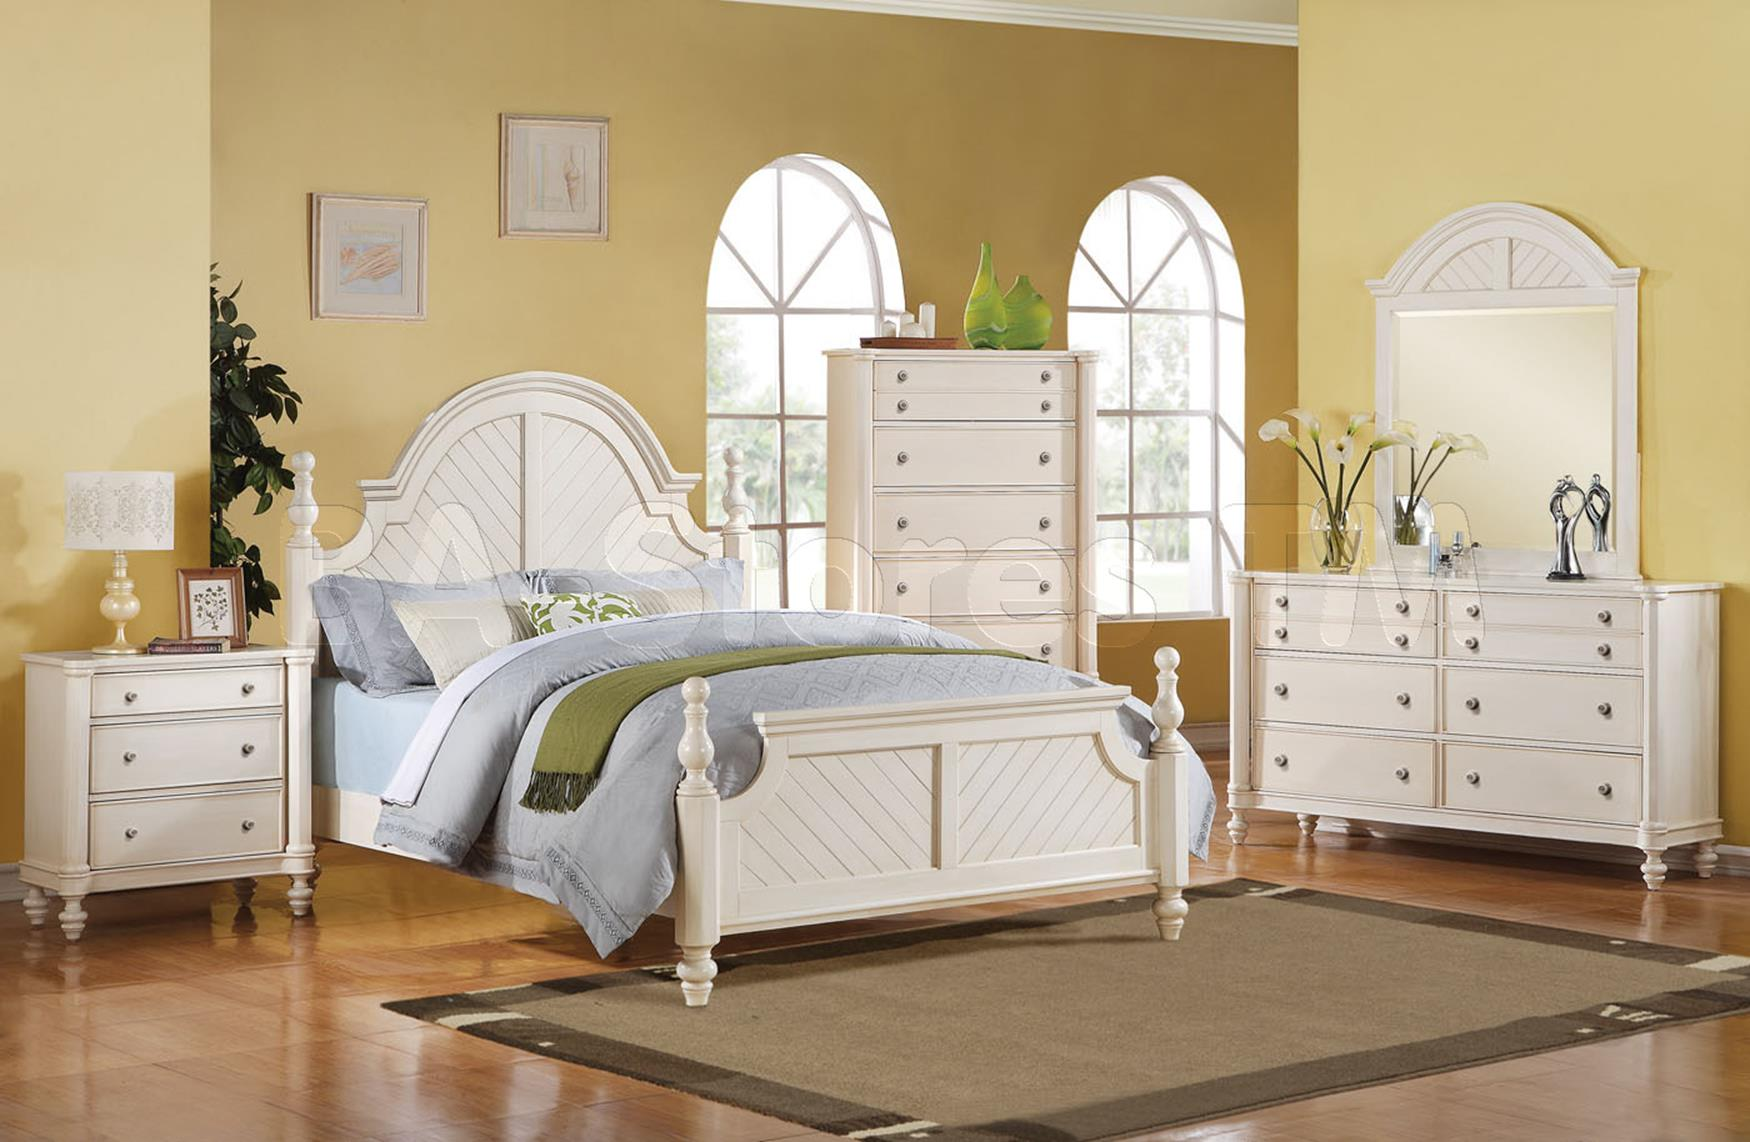 Perfect Bedroom Decorating Idea for Craft 8